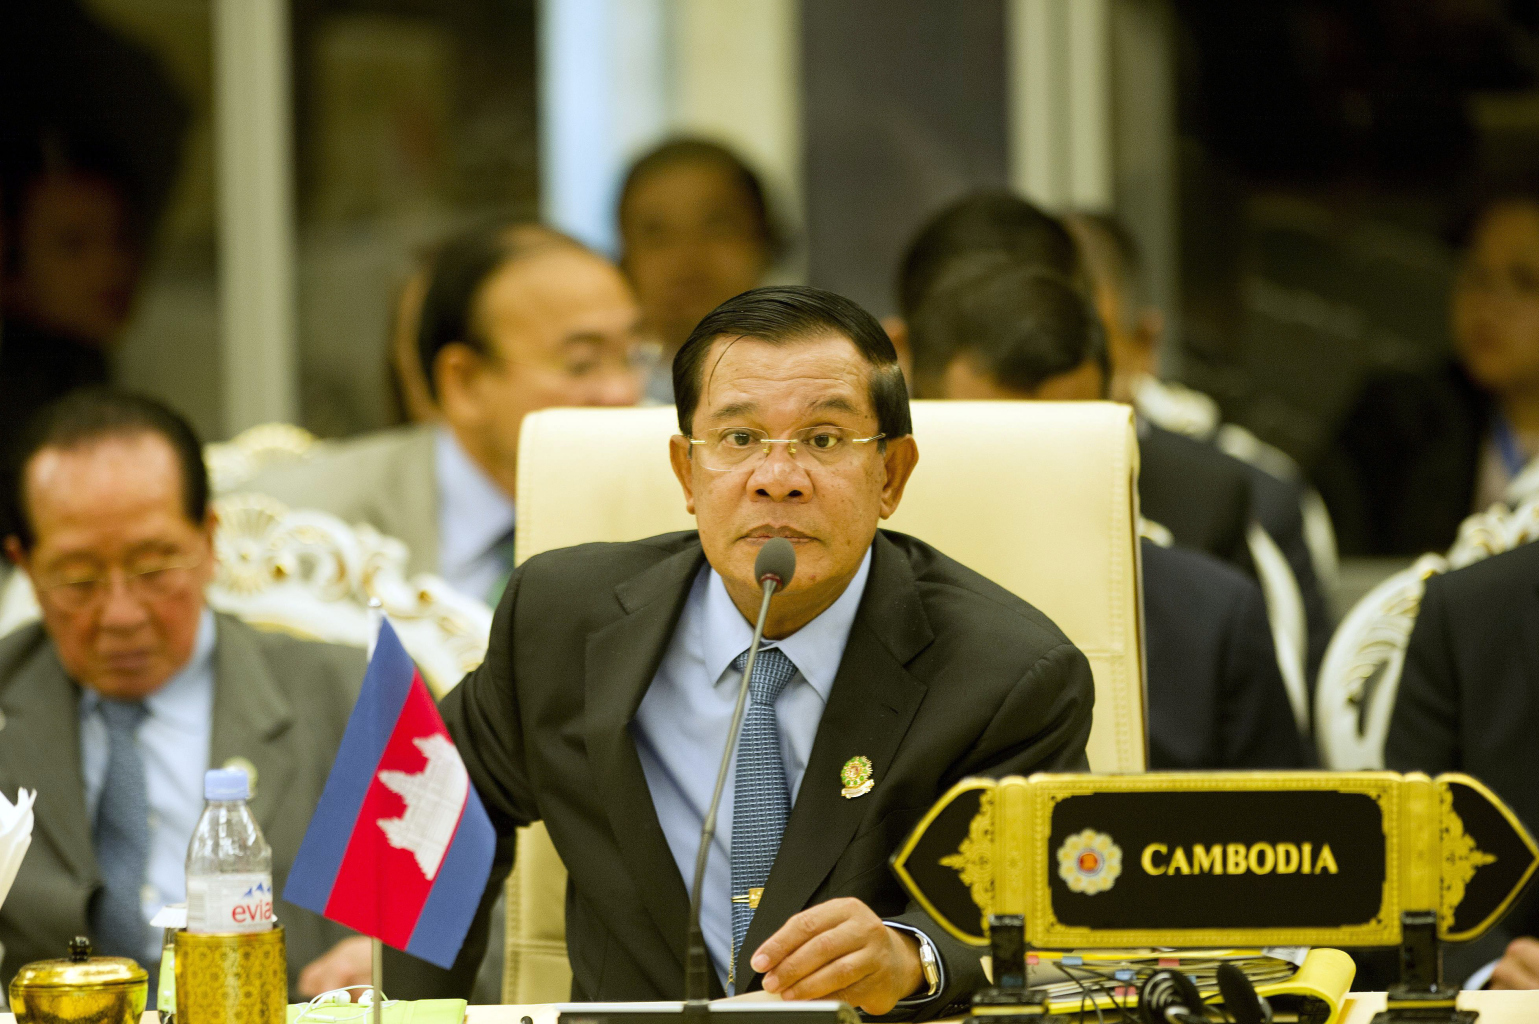 Le Premier ministre cambodgien Hun Sen lors du 17ème sommet ASEAN-Chine au Myanmar International Convention Center à Naypyidaw le 13 novembre 2014. (Source : Foreign Policy)